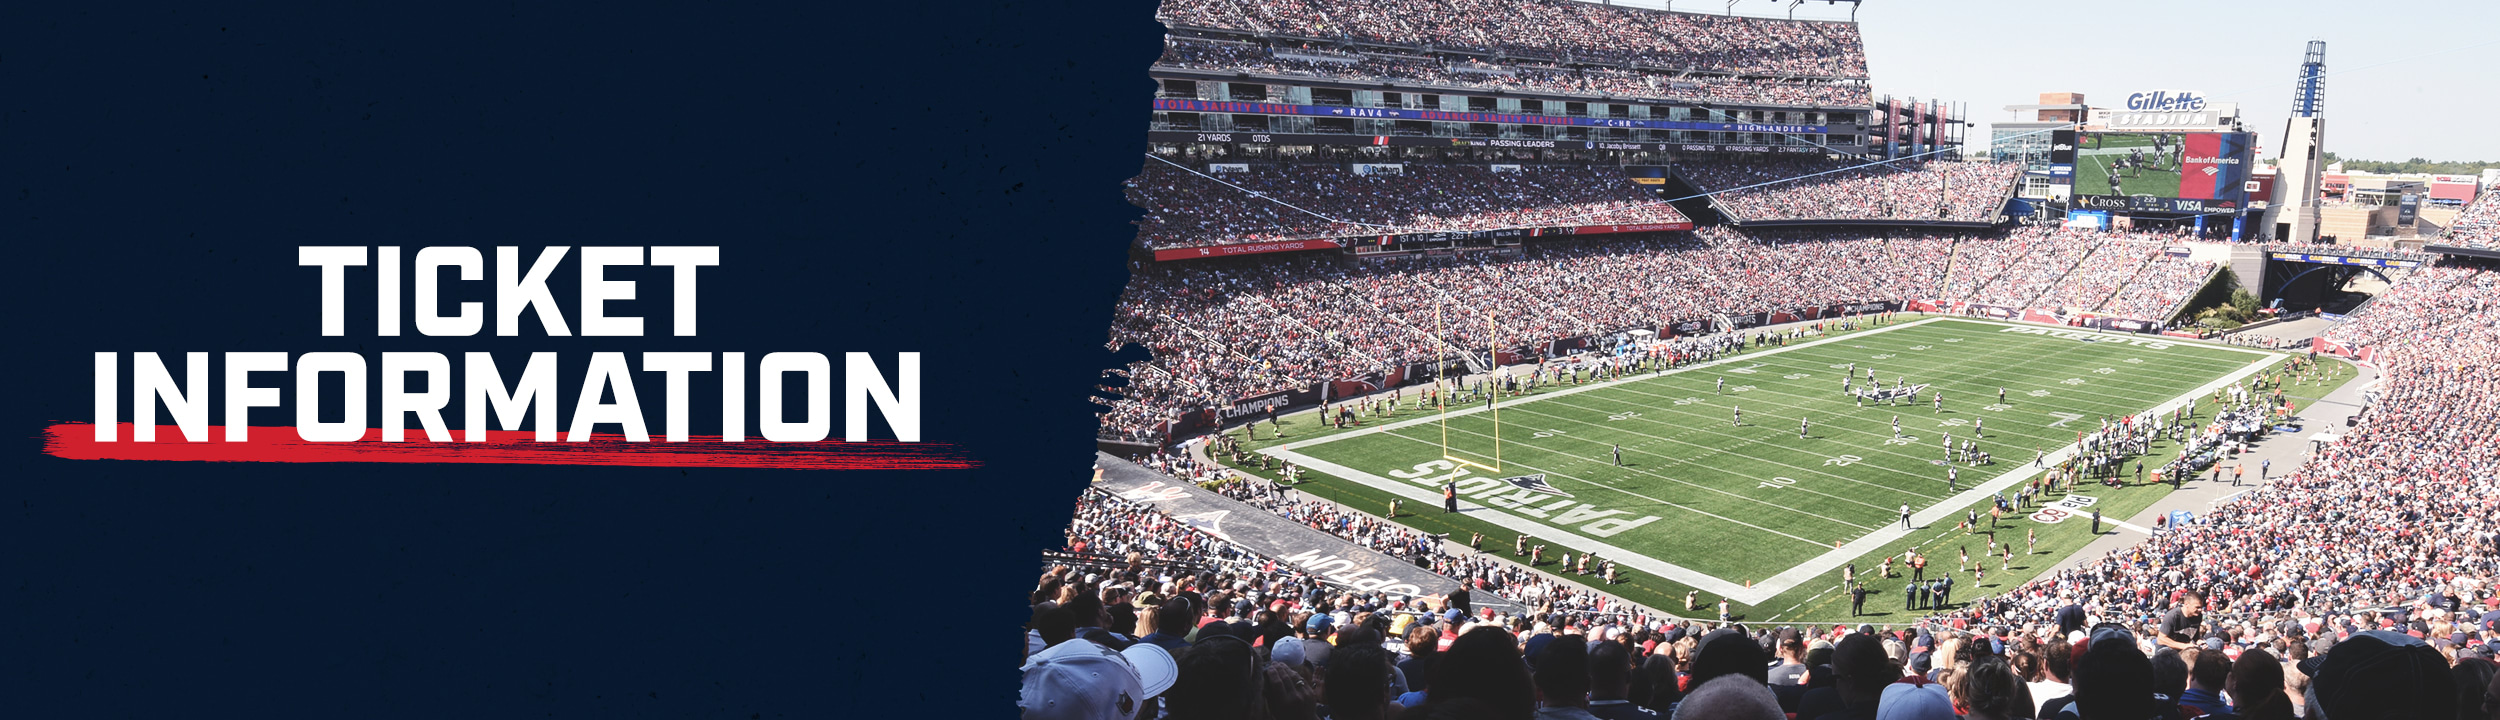 Official website of the New England Patriots